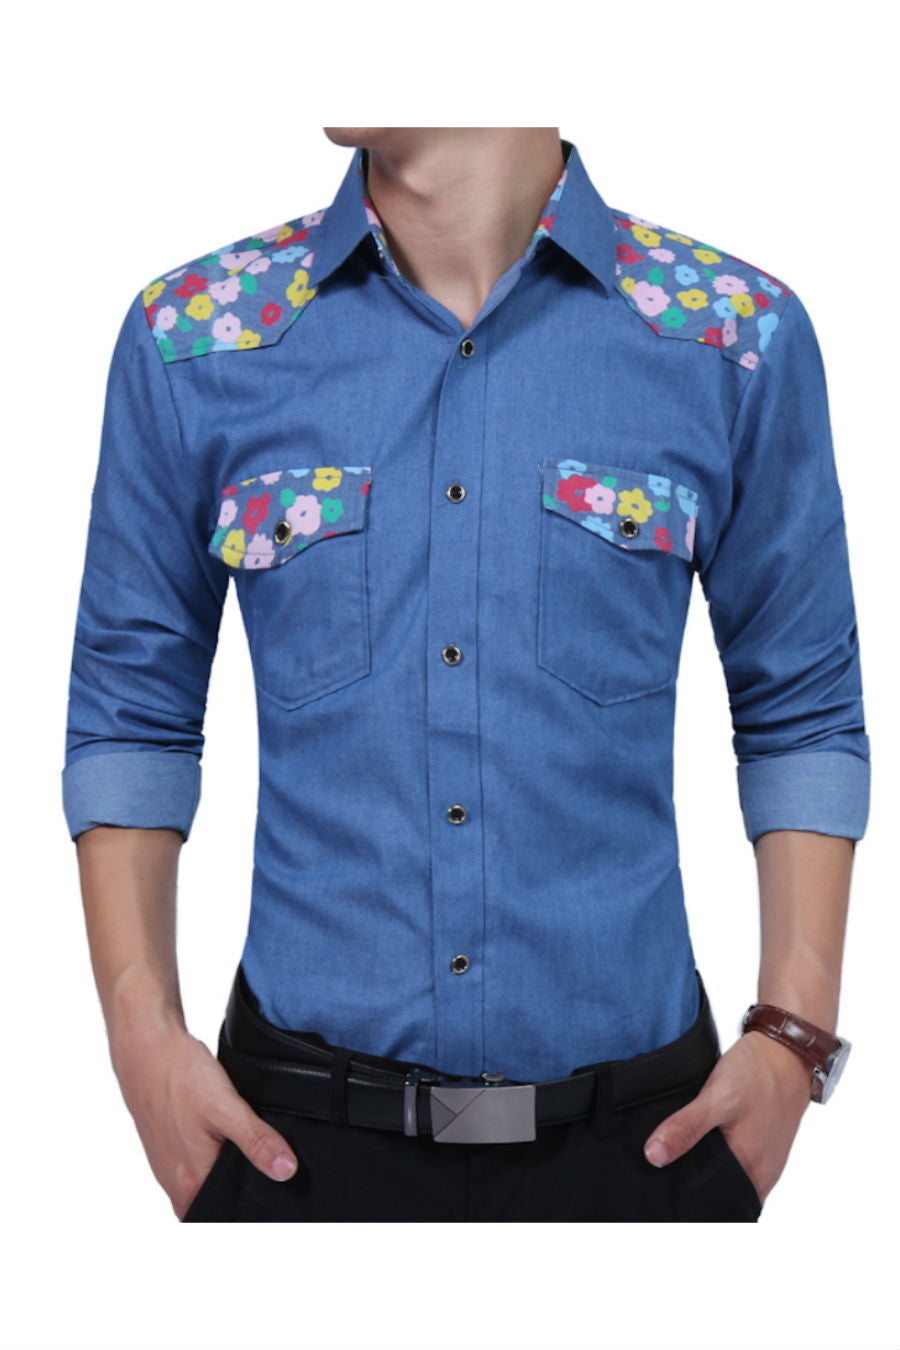 Denim Blue Floral Shirt